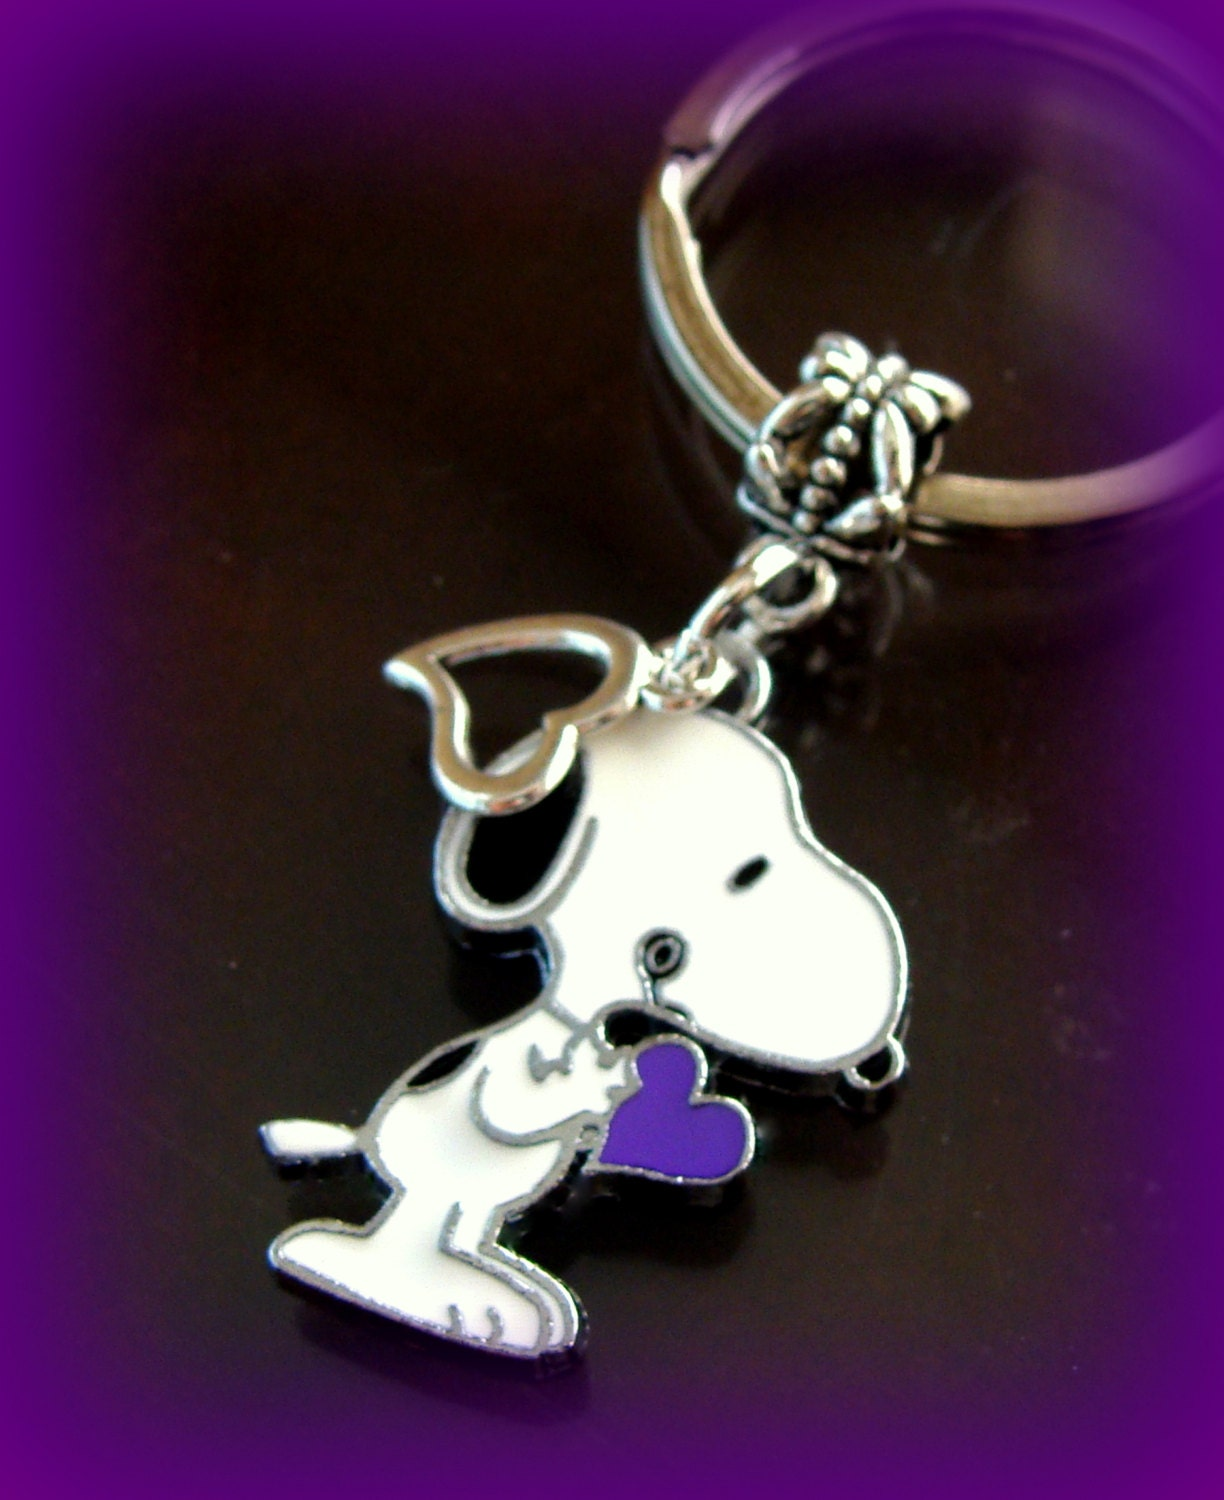 snoopy peanuts character keychain jewelry snoopy